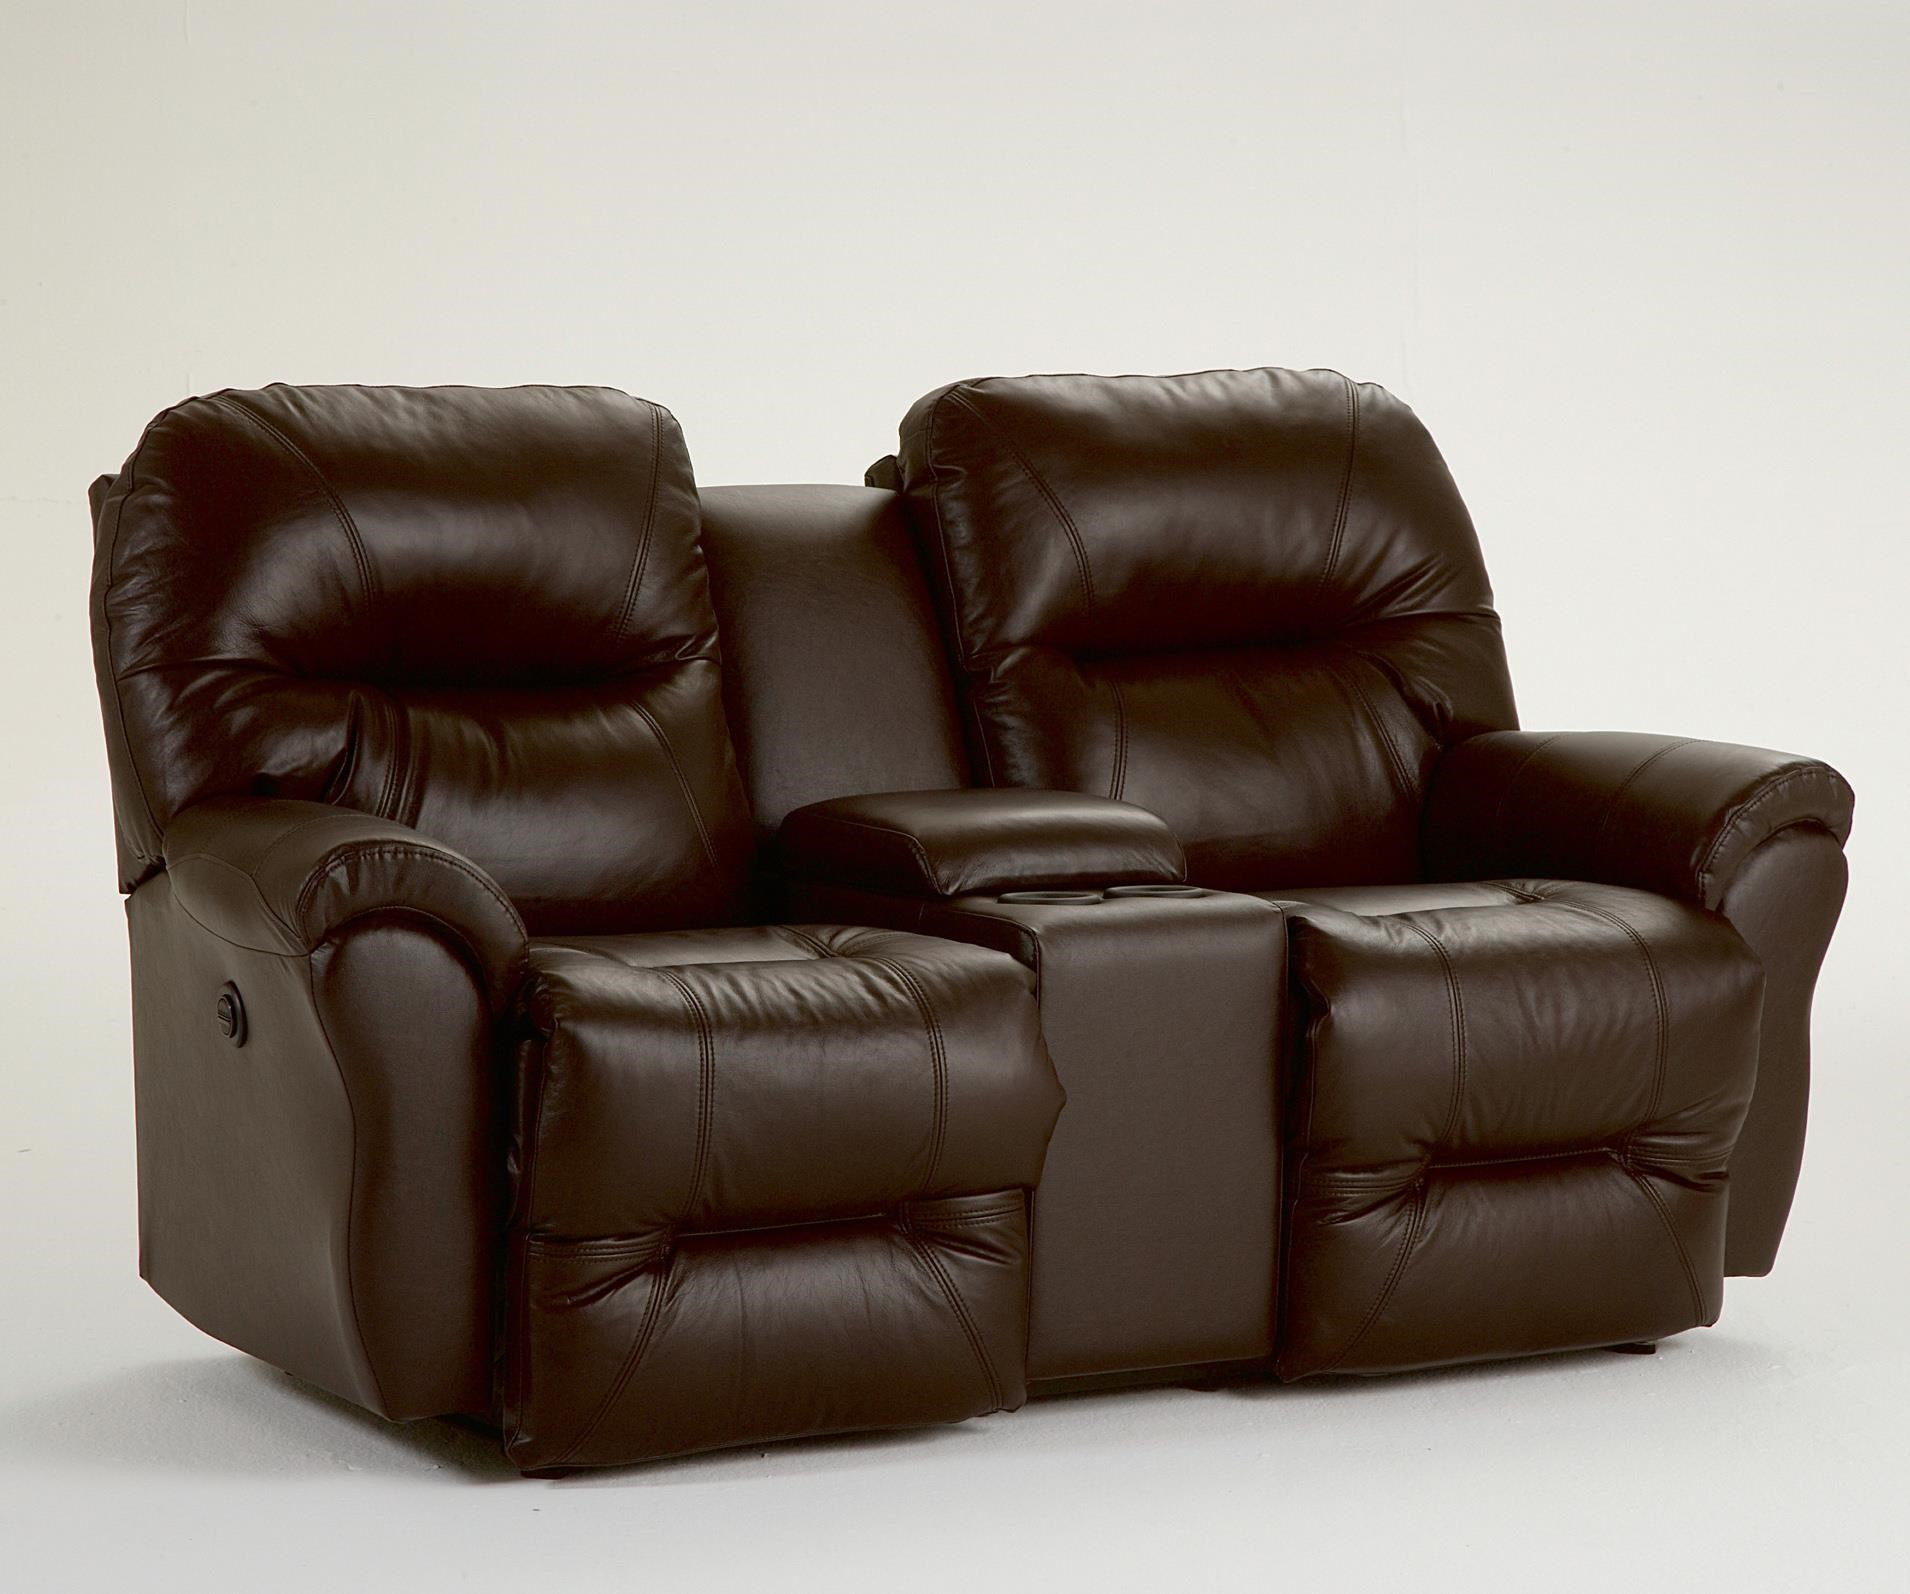 Bodie Power Space Saver Reclining Loveseat by Best Home Furnishings at Best Home Furnishings